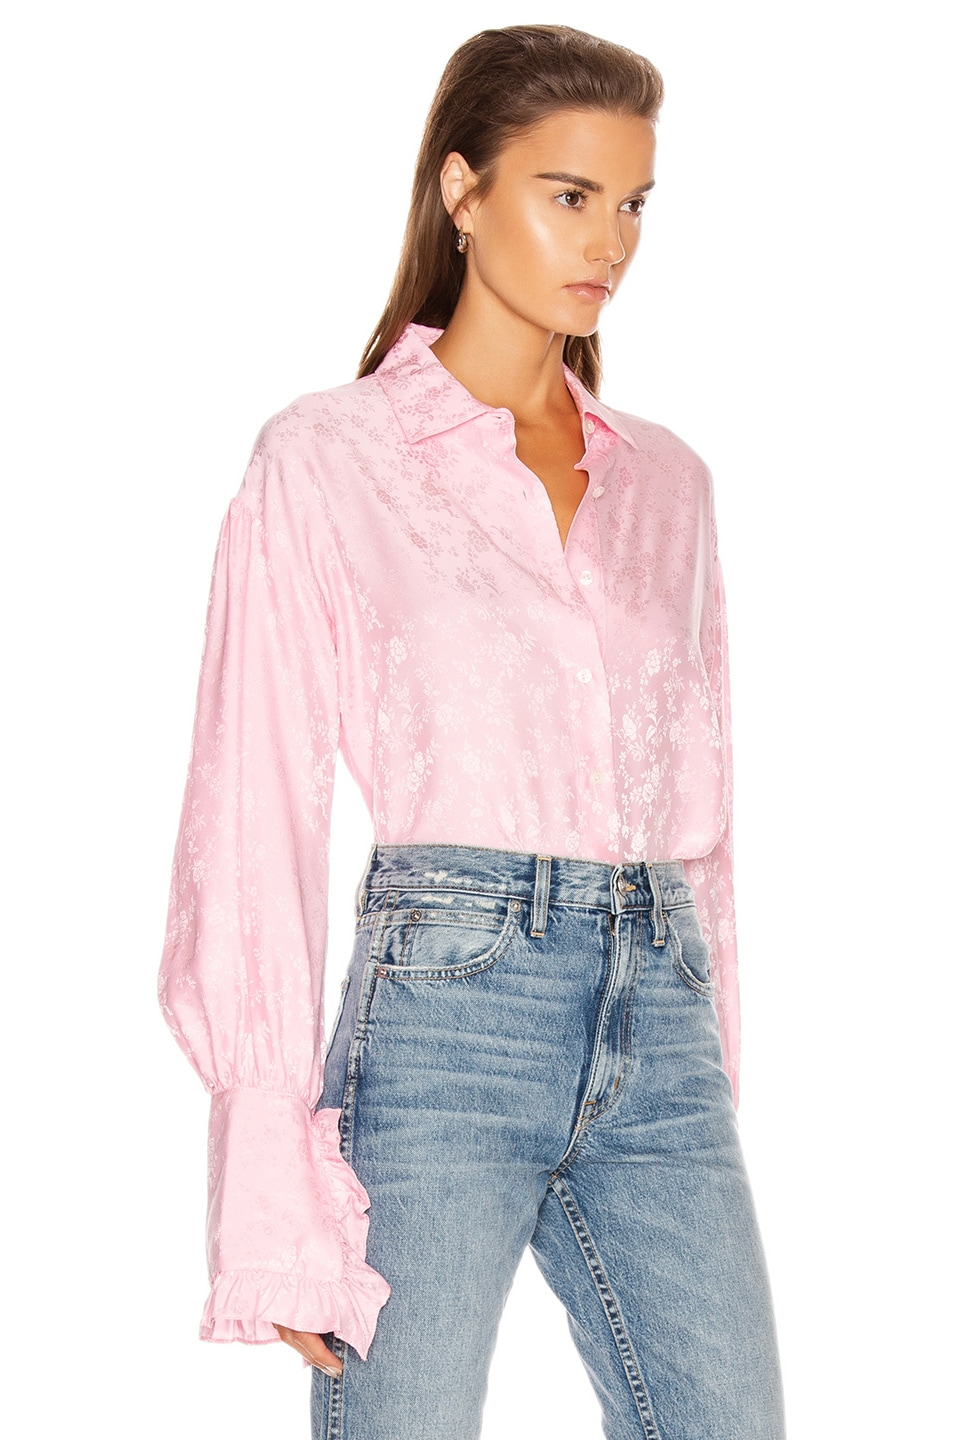 Image 2 of Les Reveries Ruffle Cuff Top in Rose Pink